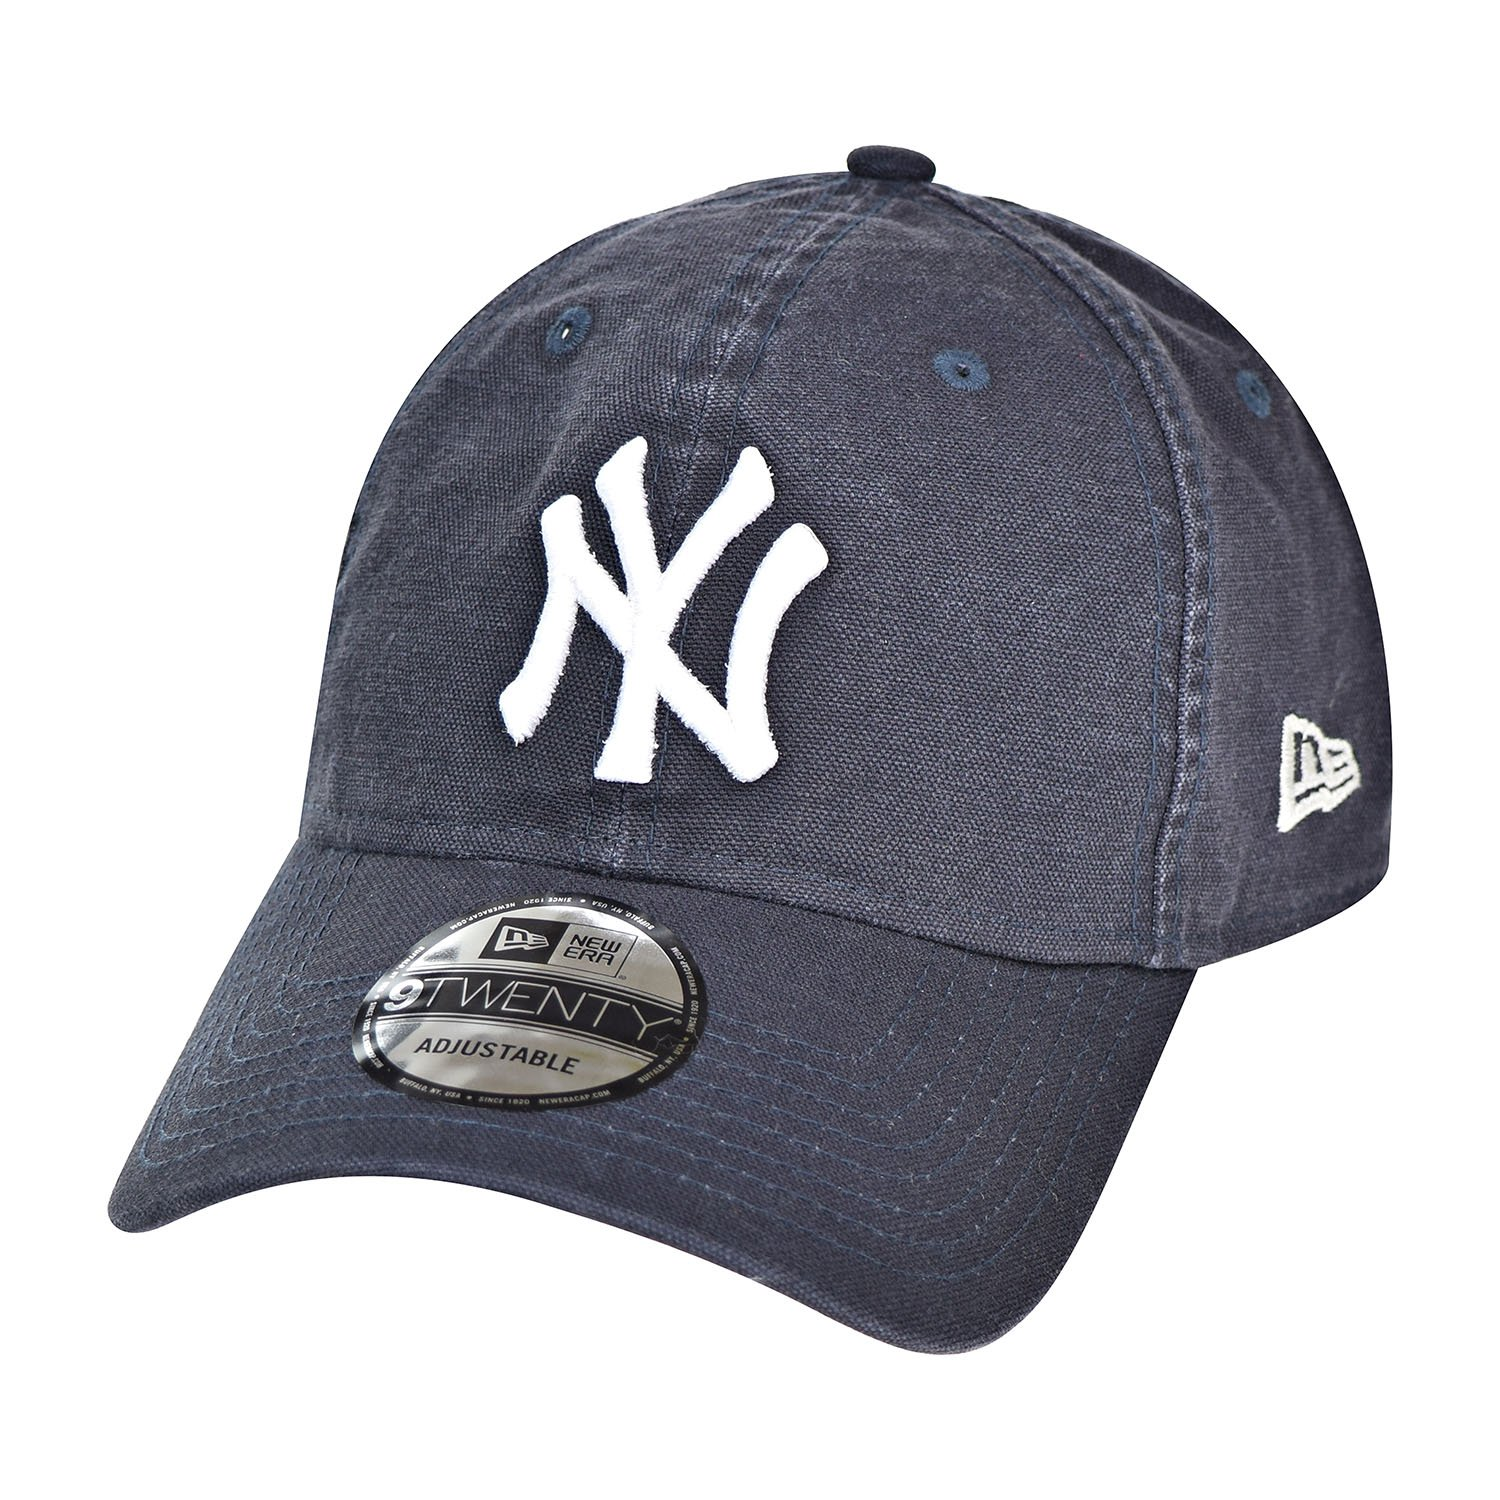 5149033bdac25 Amazon.com  New Era MLB Men s 9Twenty Core Classic New York Yankees  Baseball Hat 80445605  Sports   Outdoors